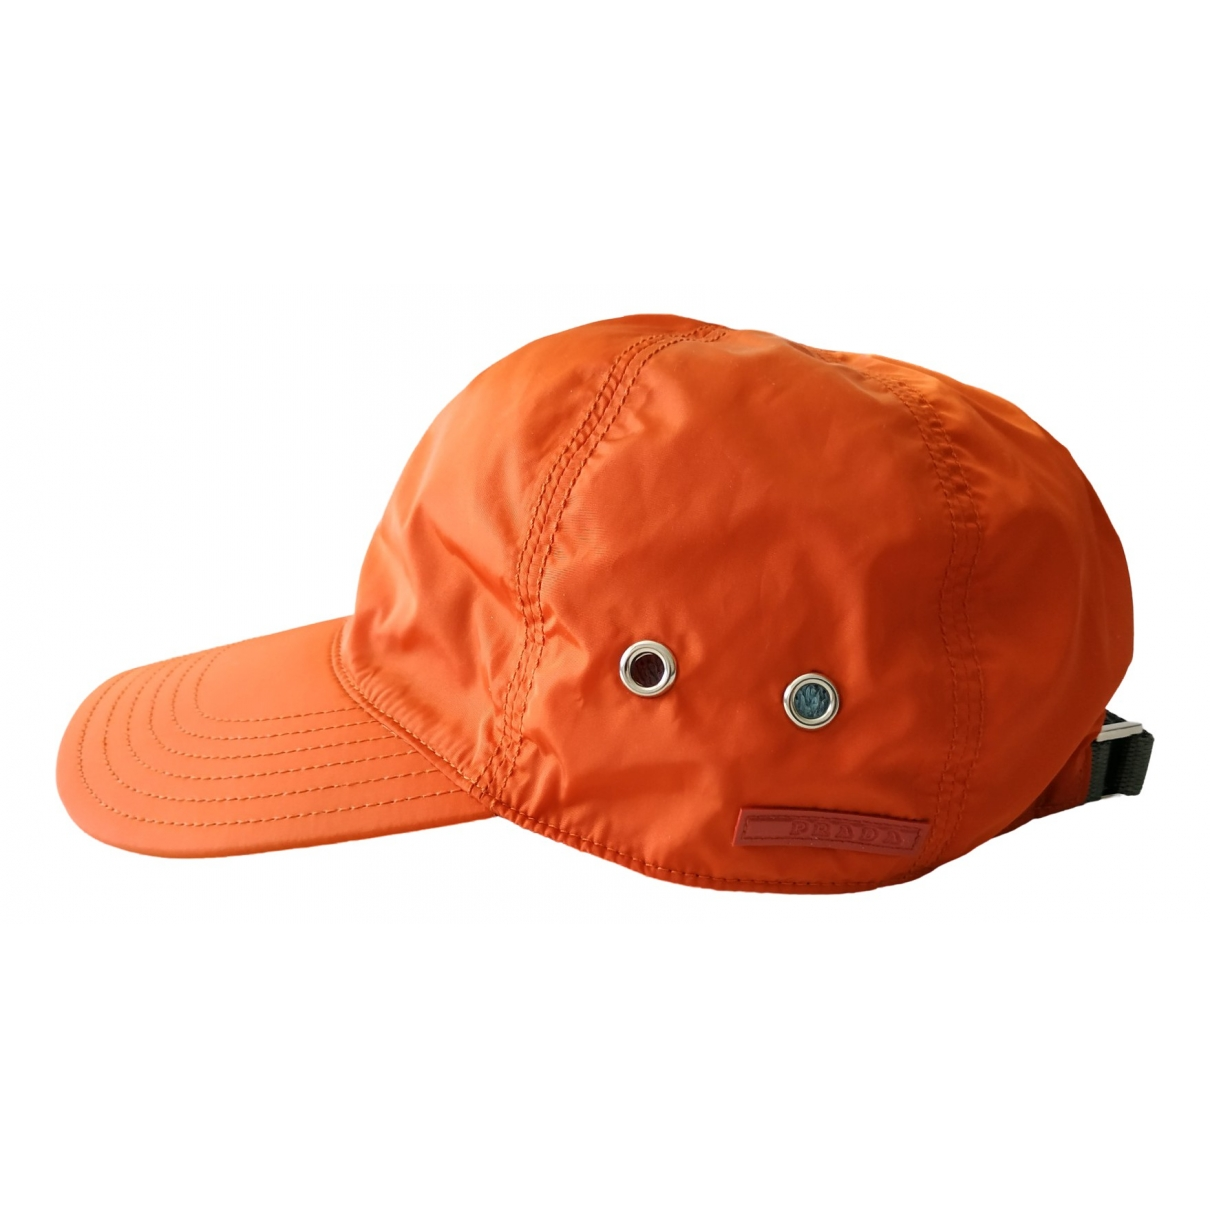 Prada \N Orange hat for Women L International